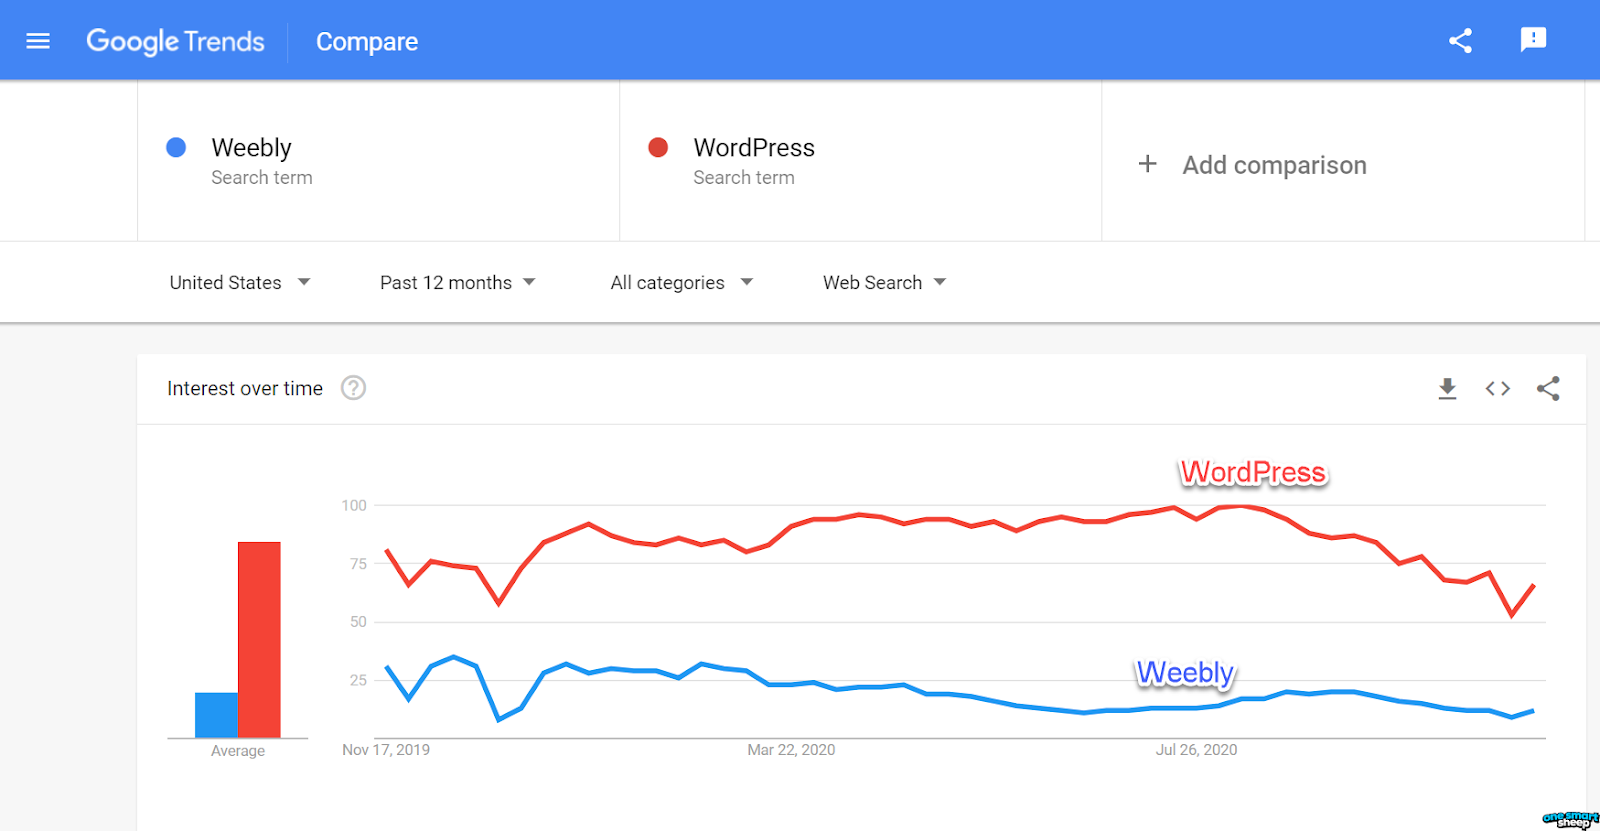 Weebly and WordPress Google Trend Comparison